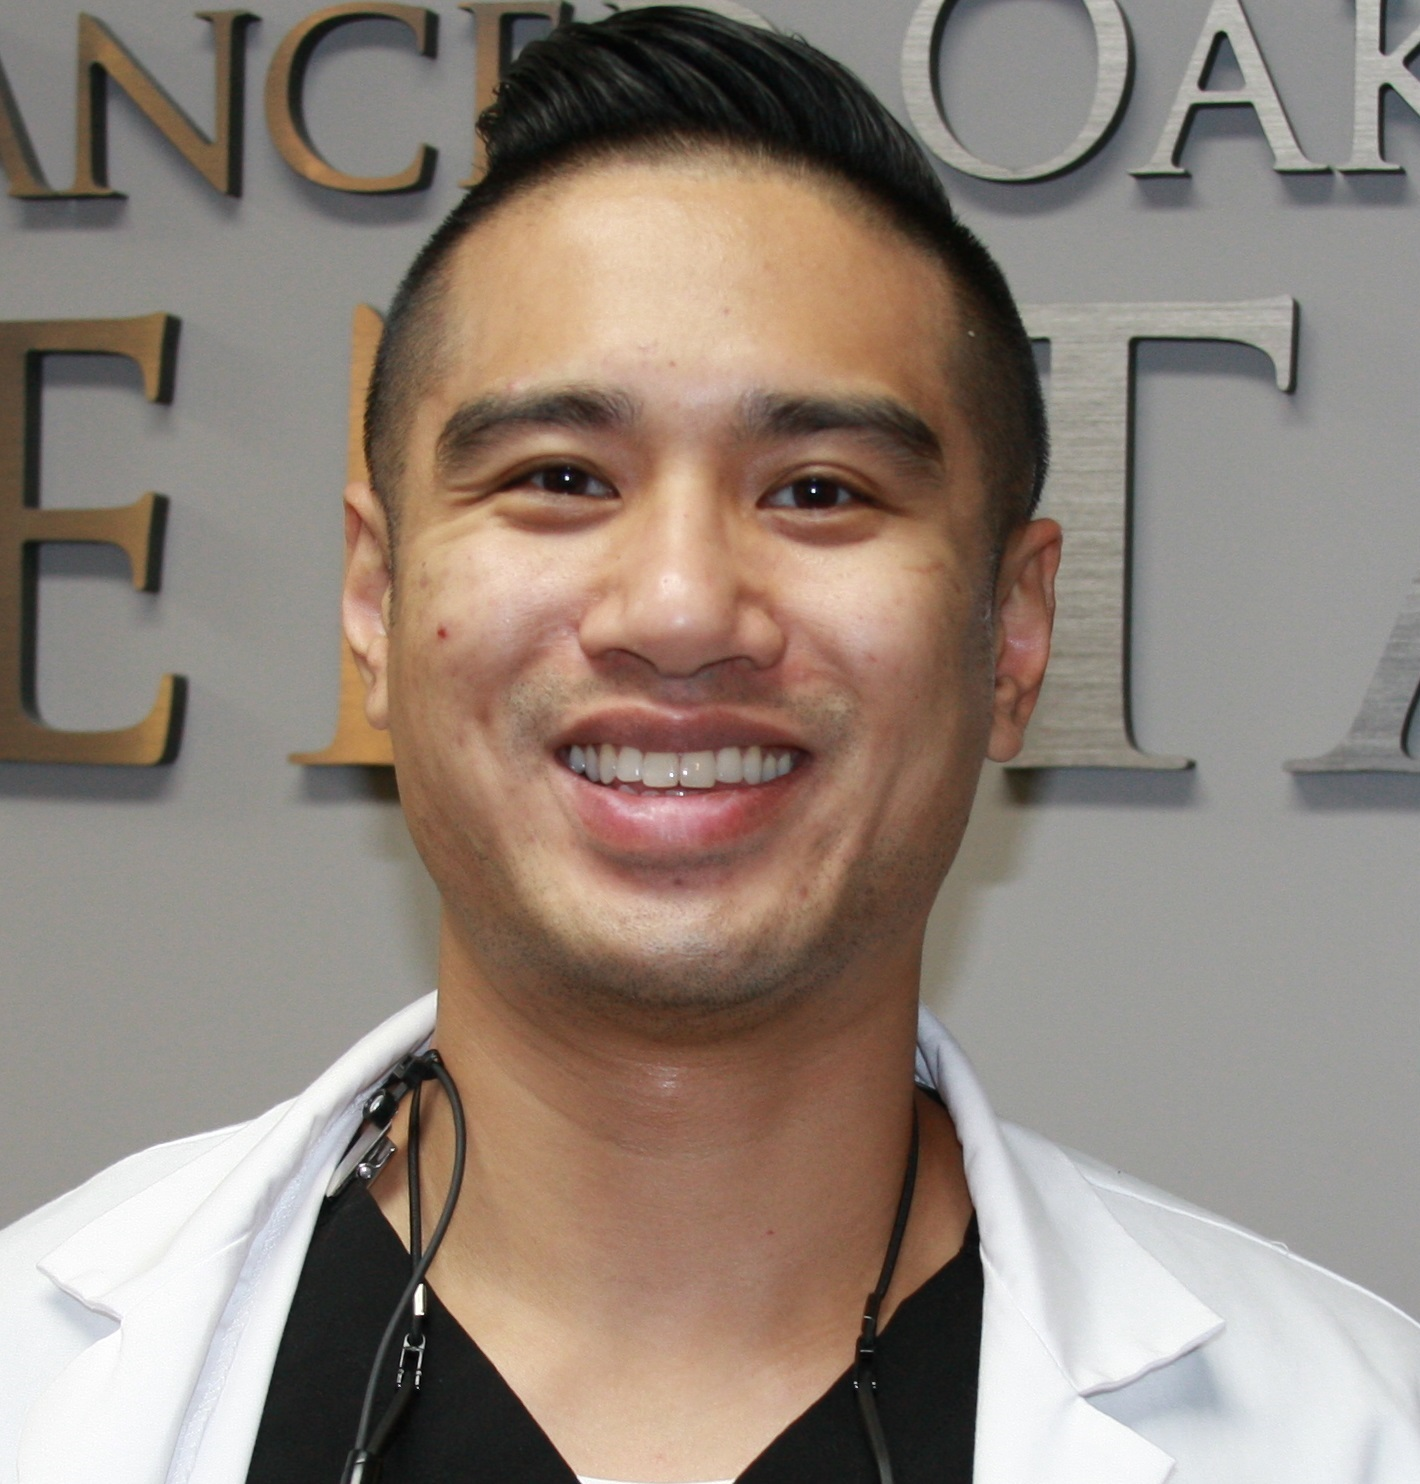 William Nguyen, DMD in Dedham